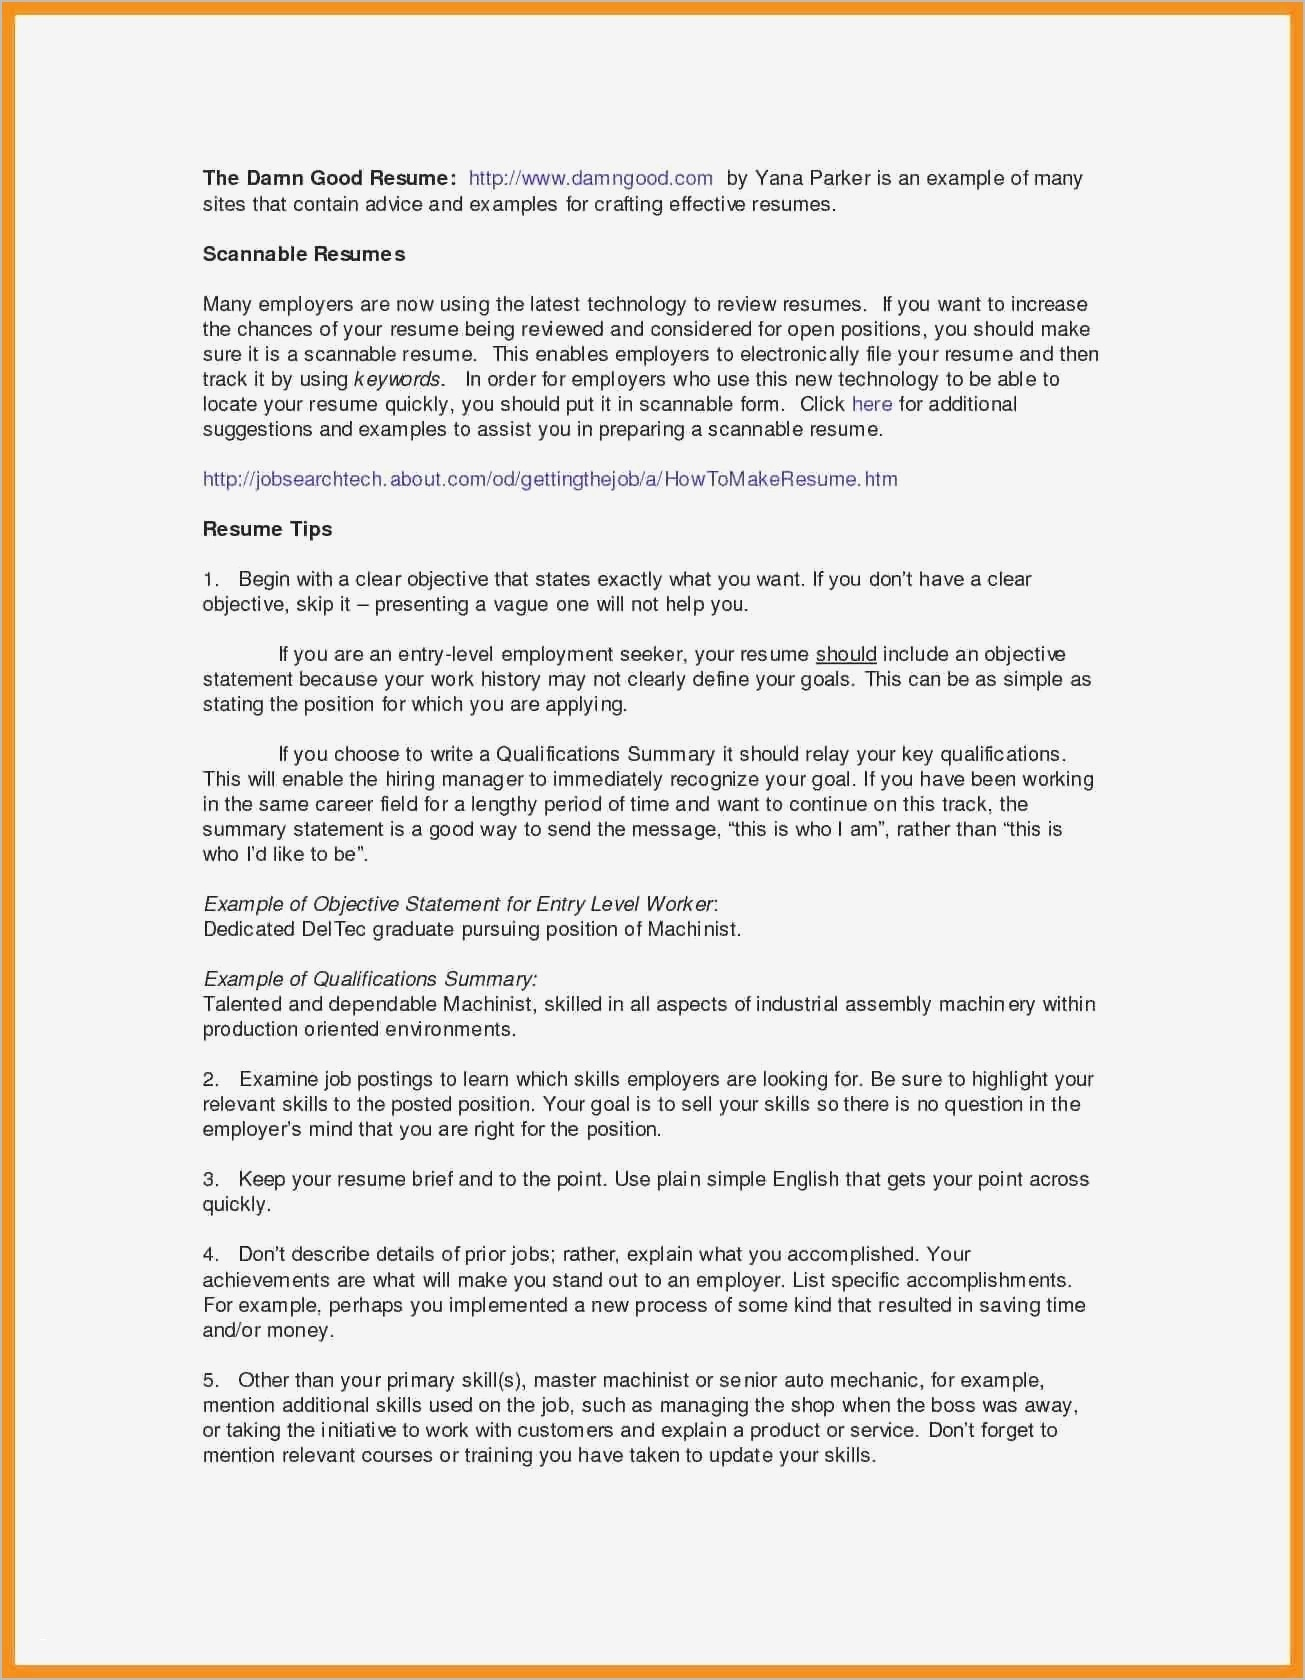 Resume Opening Statement Examples - Resume Mission Statement Examples Beautiful Resume Objective